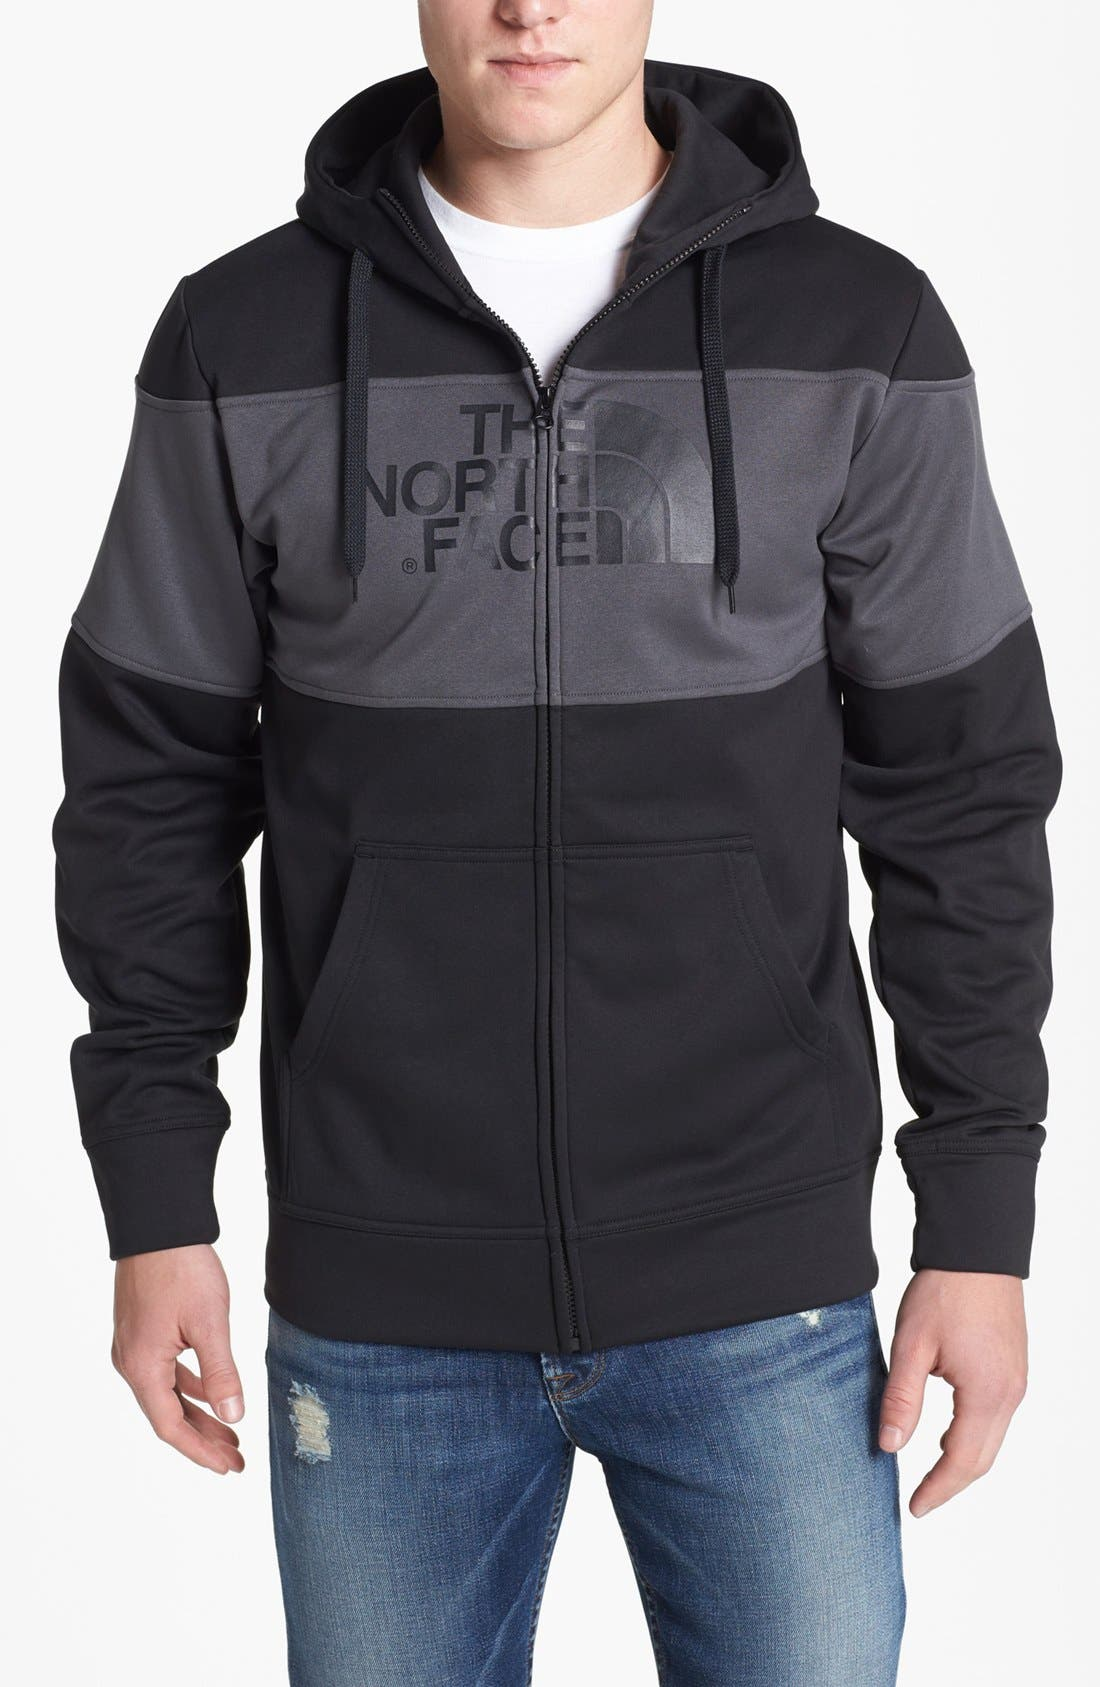 Main Image - The North Face 'Peak Dome' Zip Hoodie